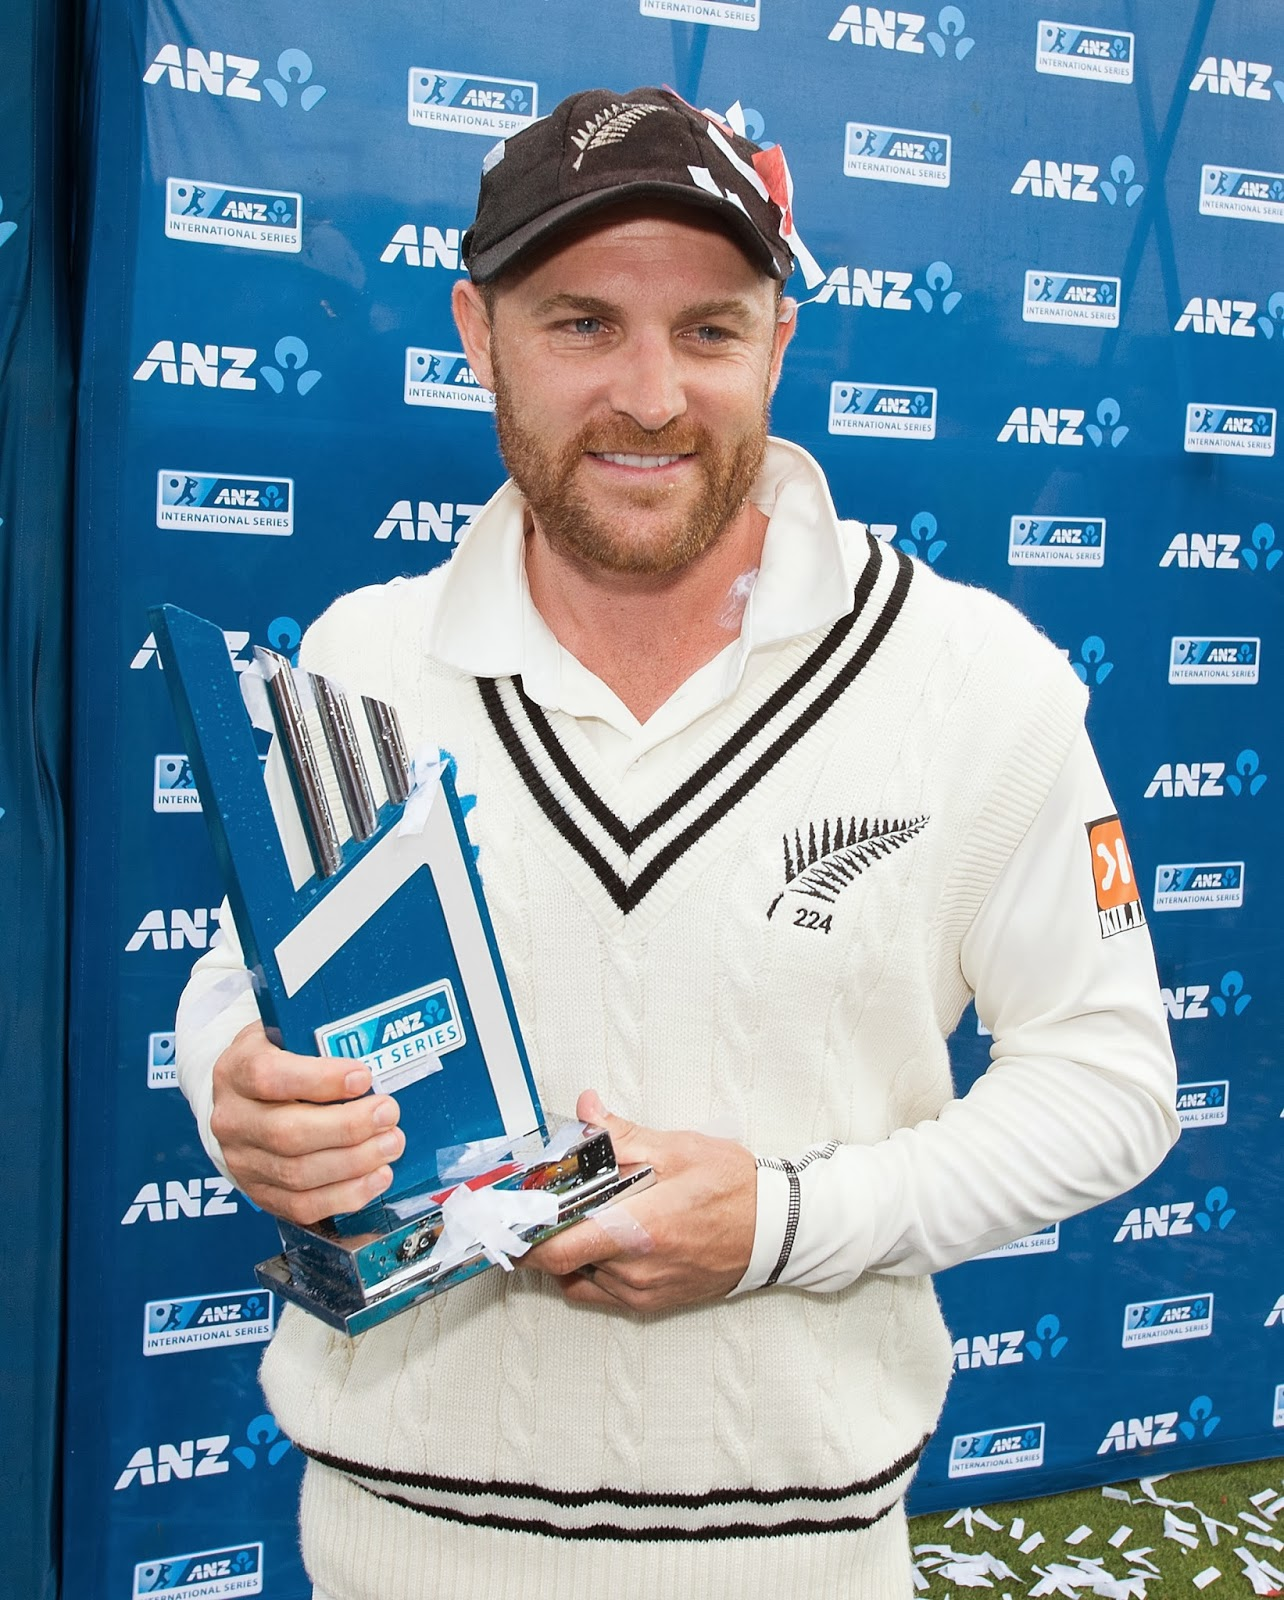 Basin Reserve, Brendon McCullum, Captain, Century, Cricket, History, India Tour New Zealand 2014, Match, New Zealand, New Zealand vs India, Sports, Test Series, Triple-centurion, Trophy, Wellington, Winner,